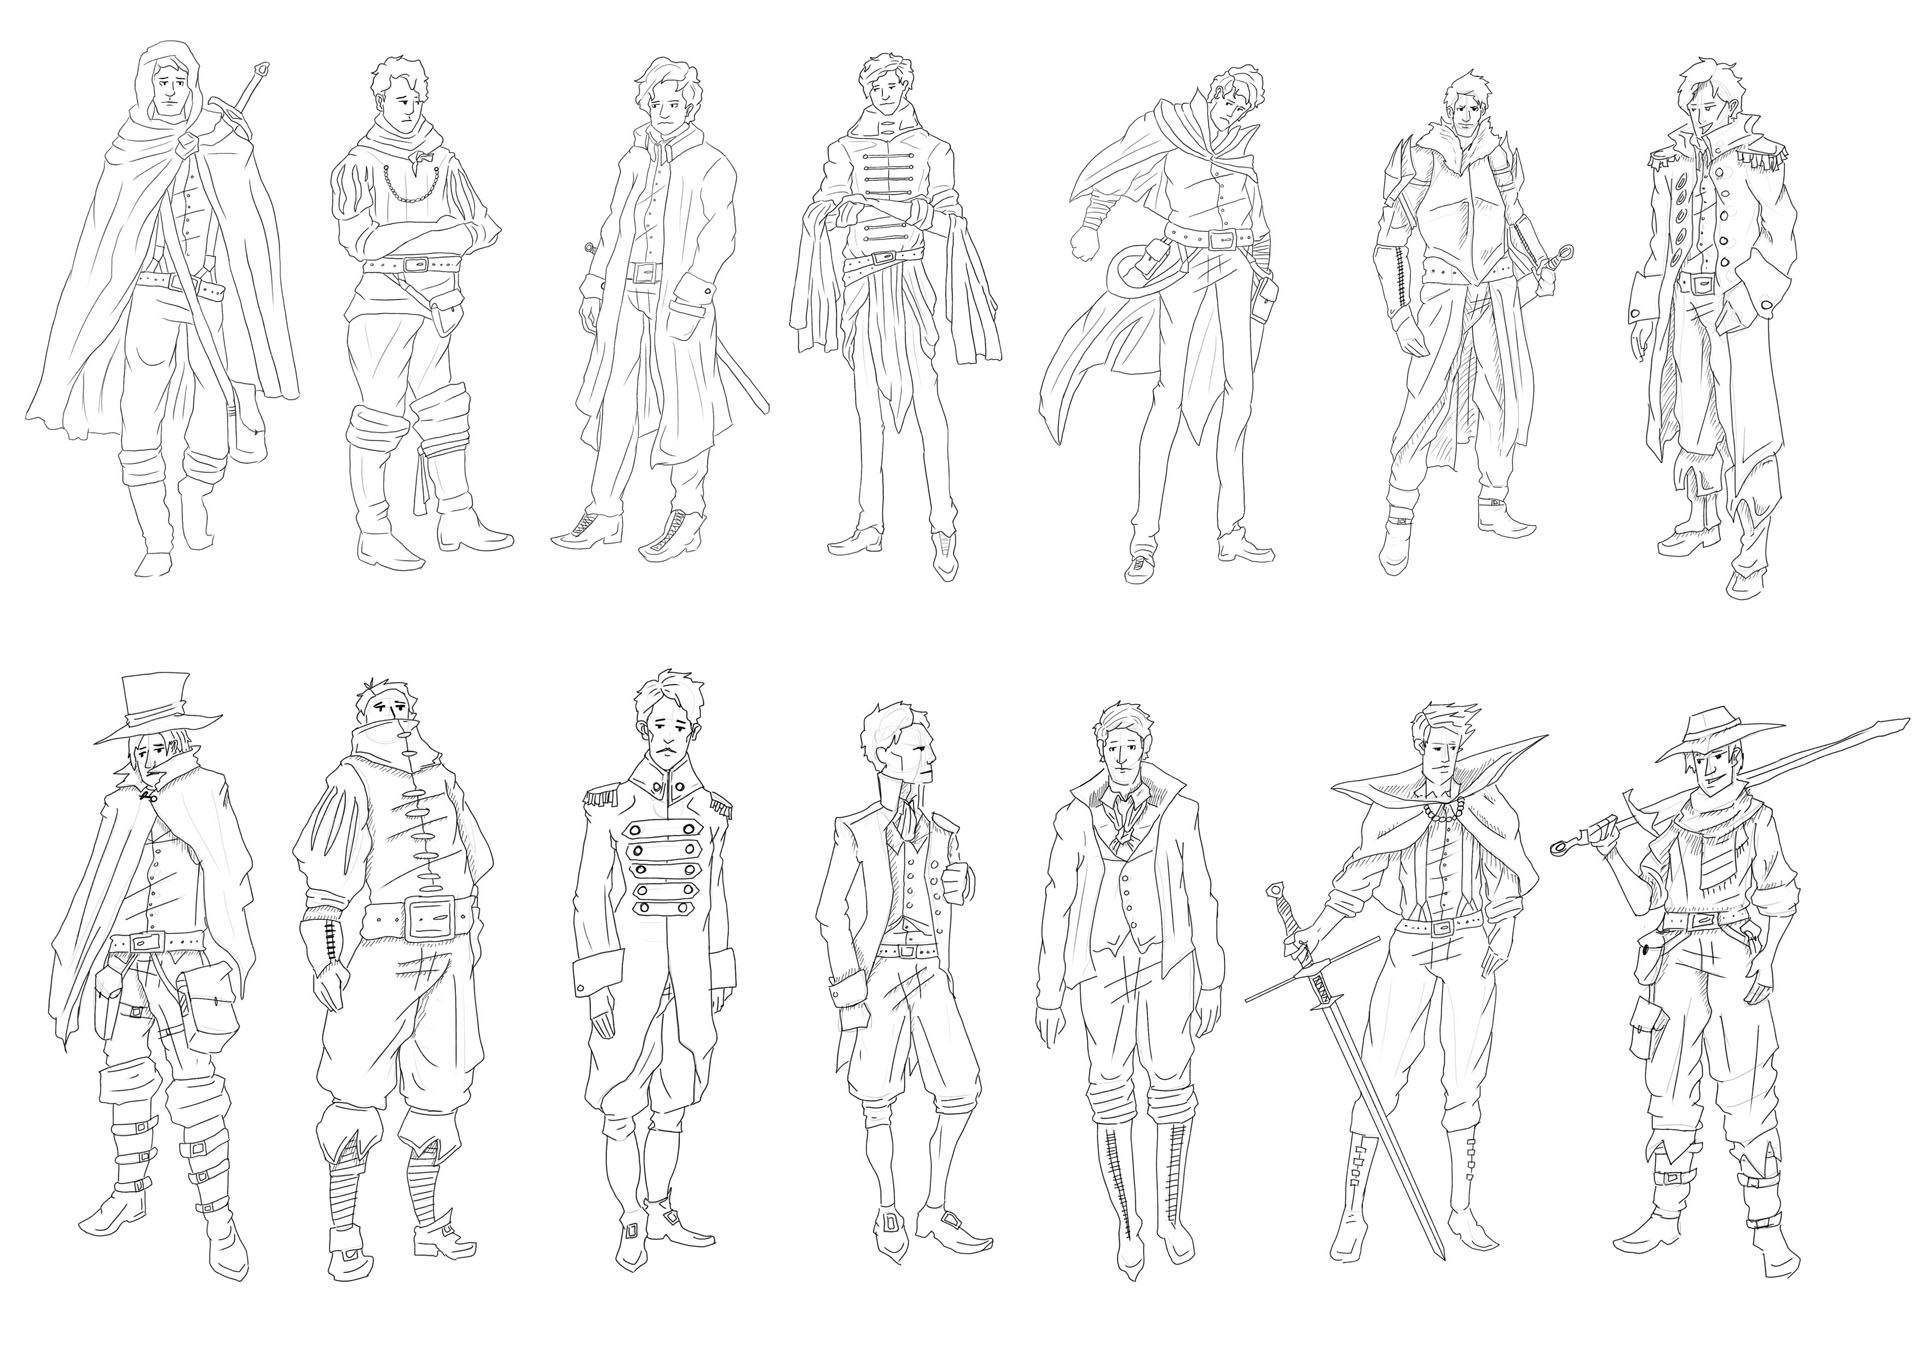 Victorian Gothic Character Exploration 9 Image